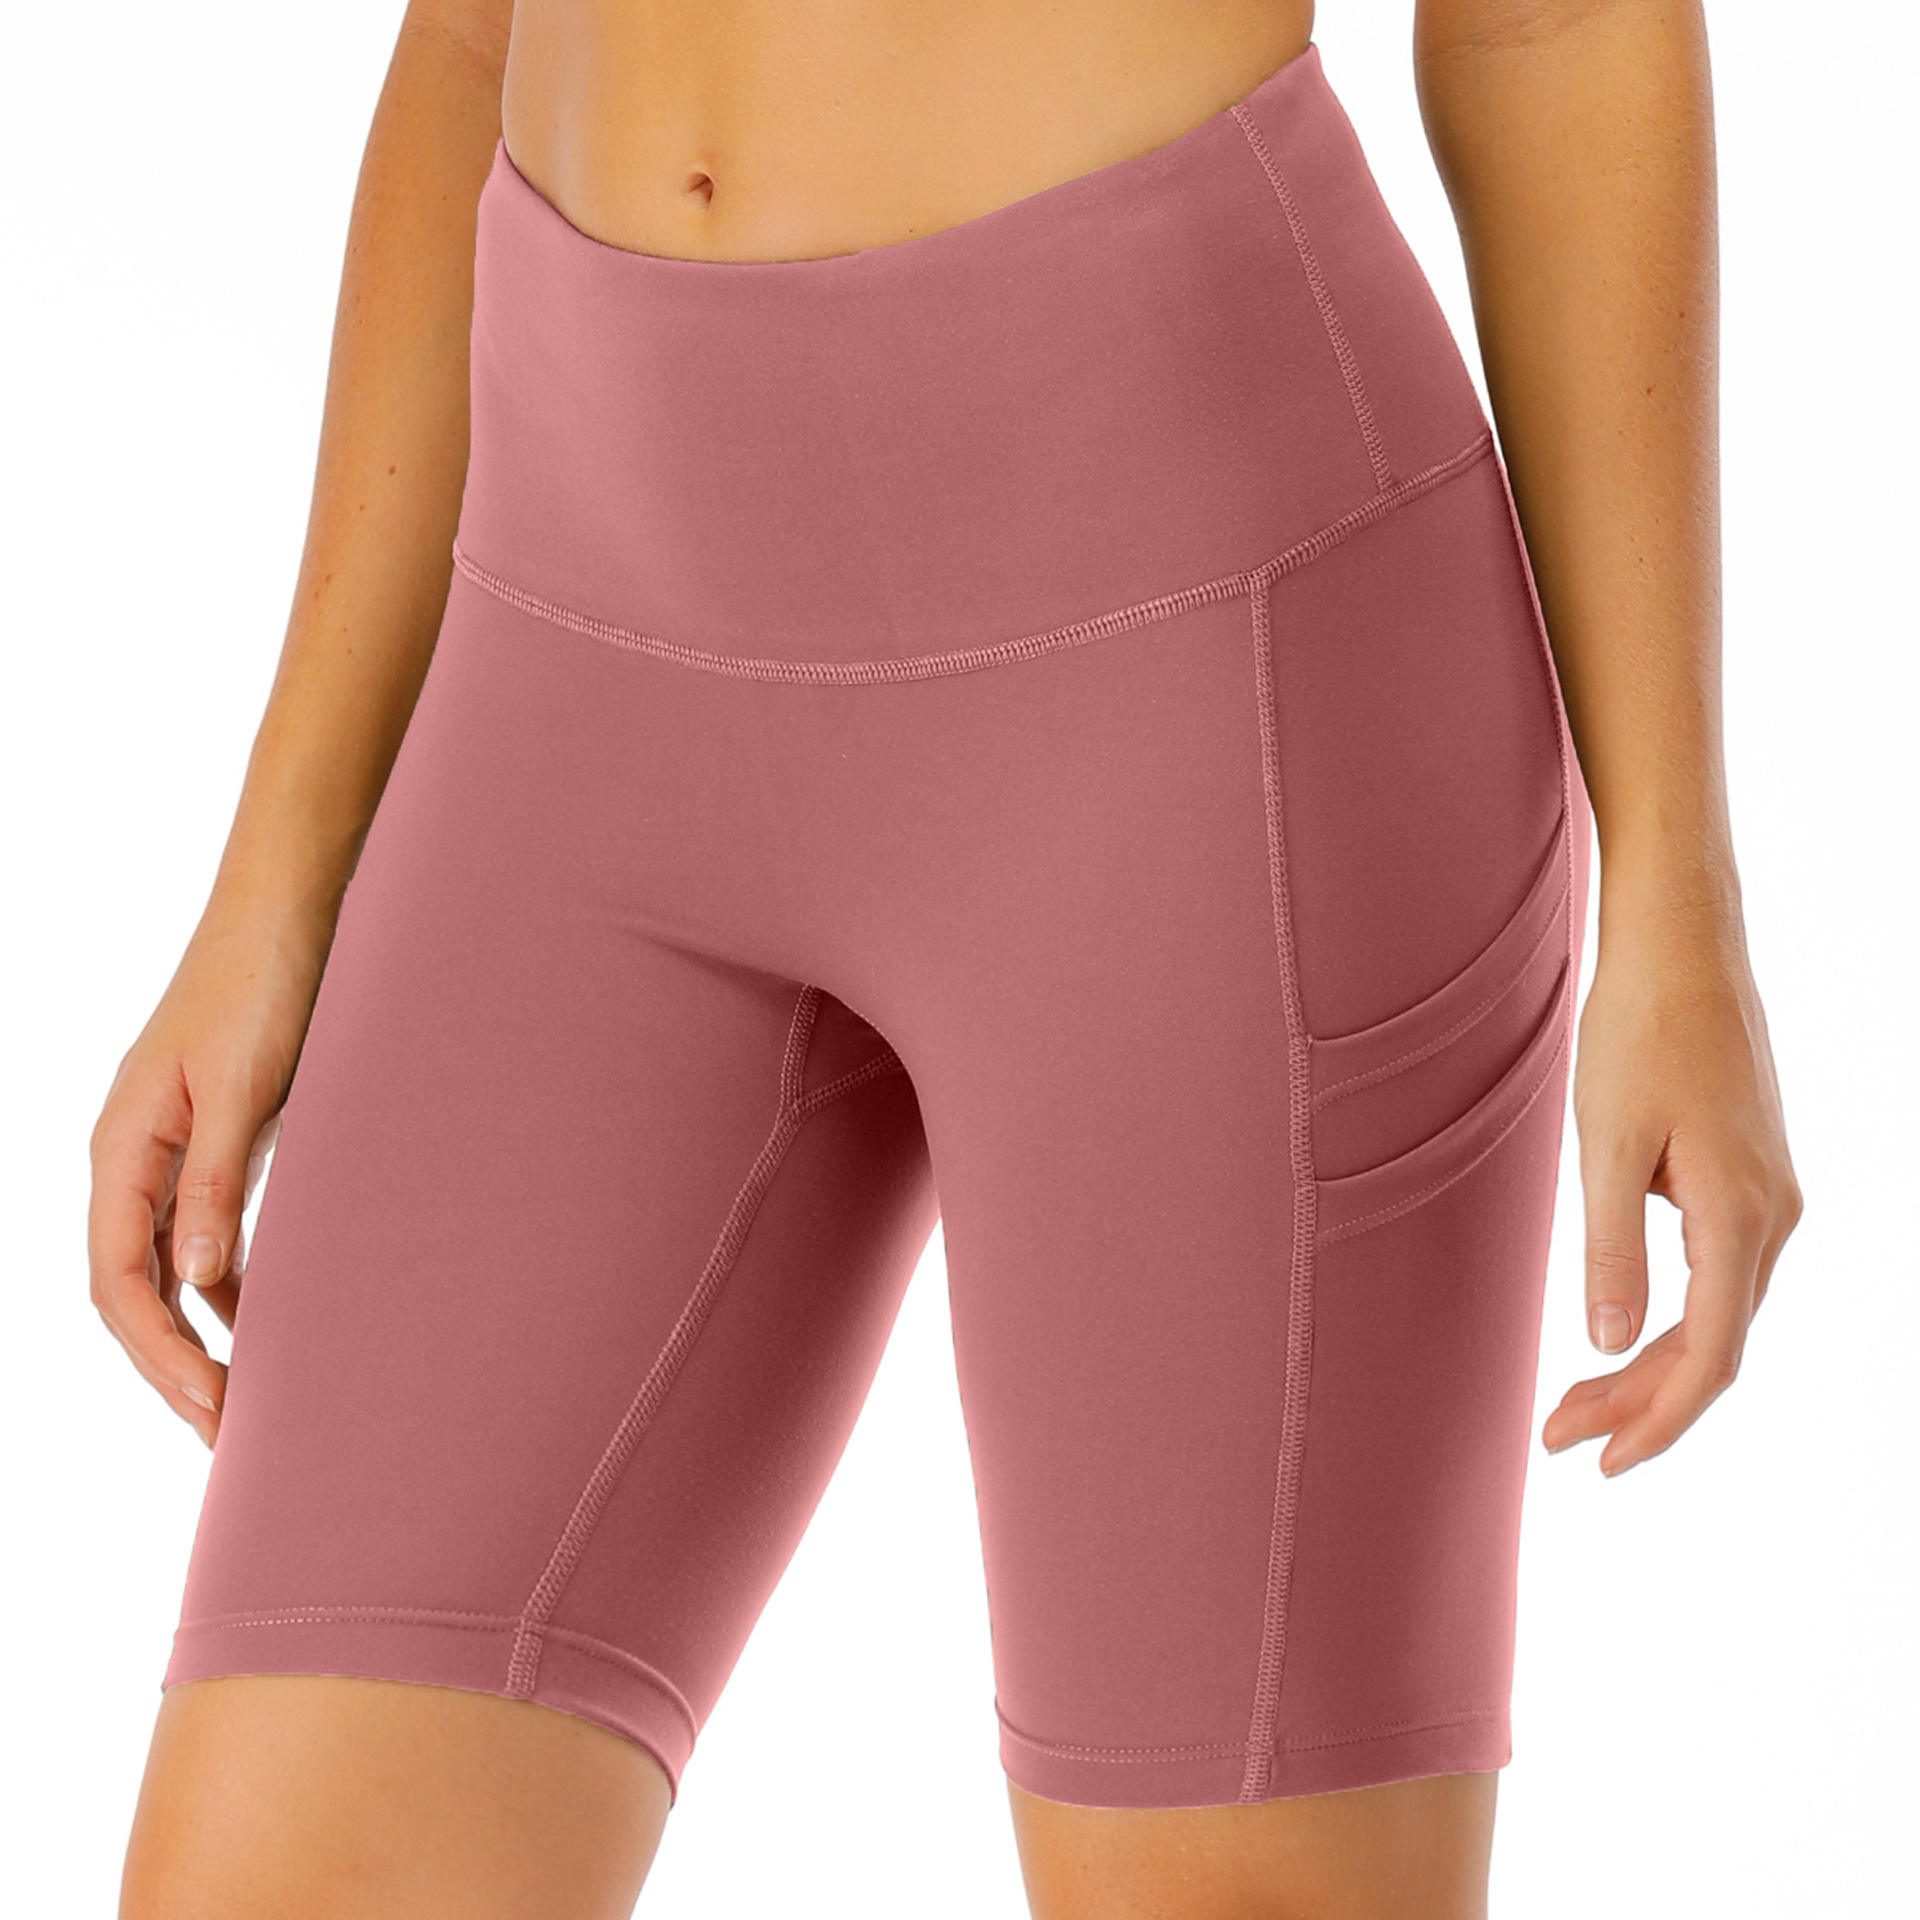 Women's High Rise Compression Running Workout Fitness Biker Shorts